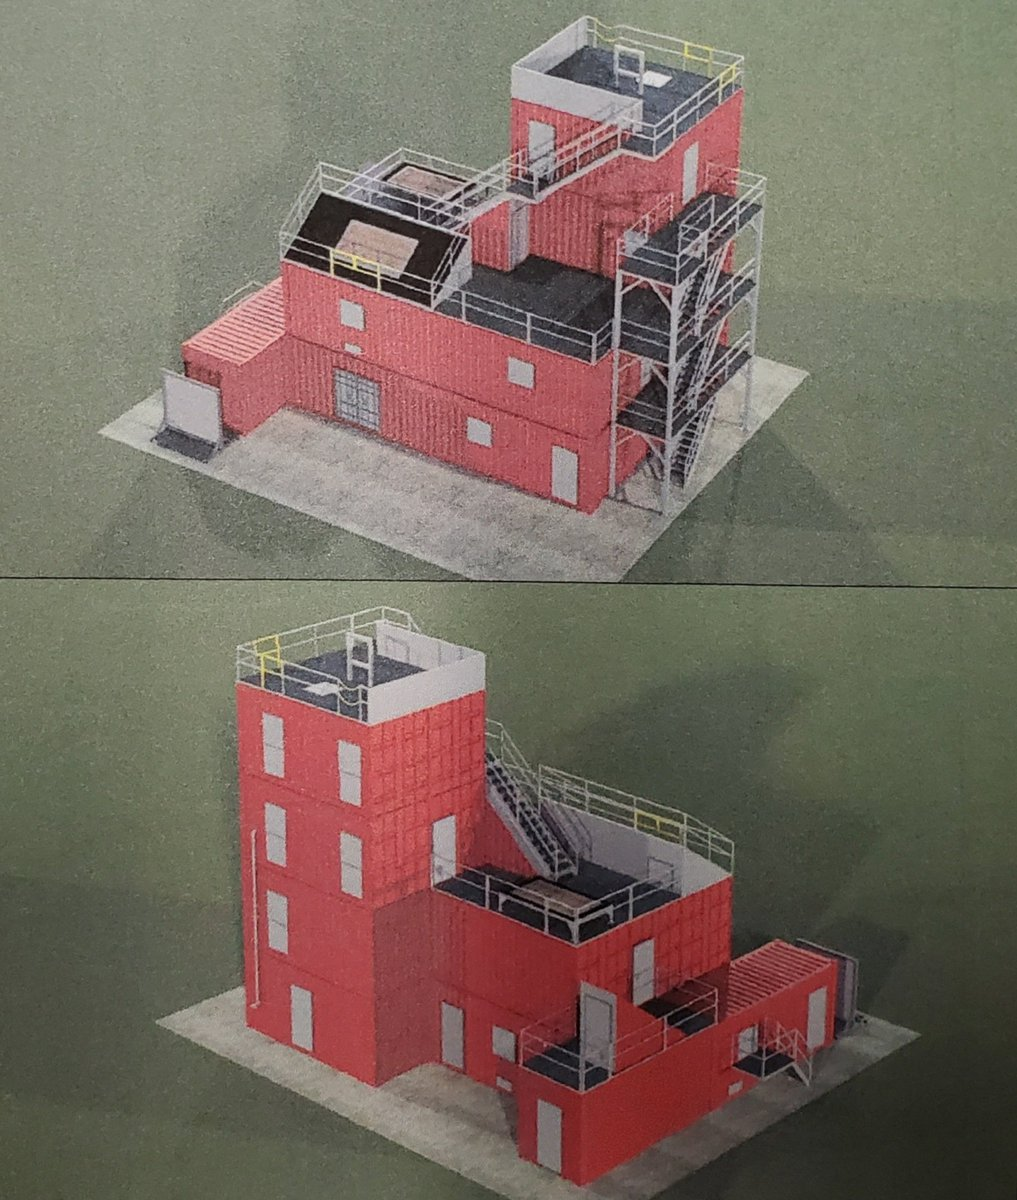 2/2 The building shown is a conceptual model of our design. This is an amazing building that will provide hands on, invaluable training to both our members and firefighters within our region. @MAFireDistrict7